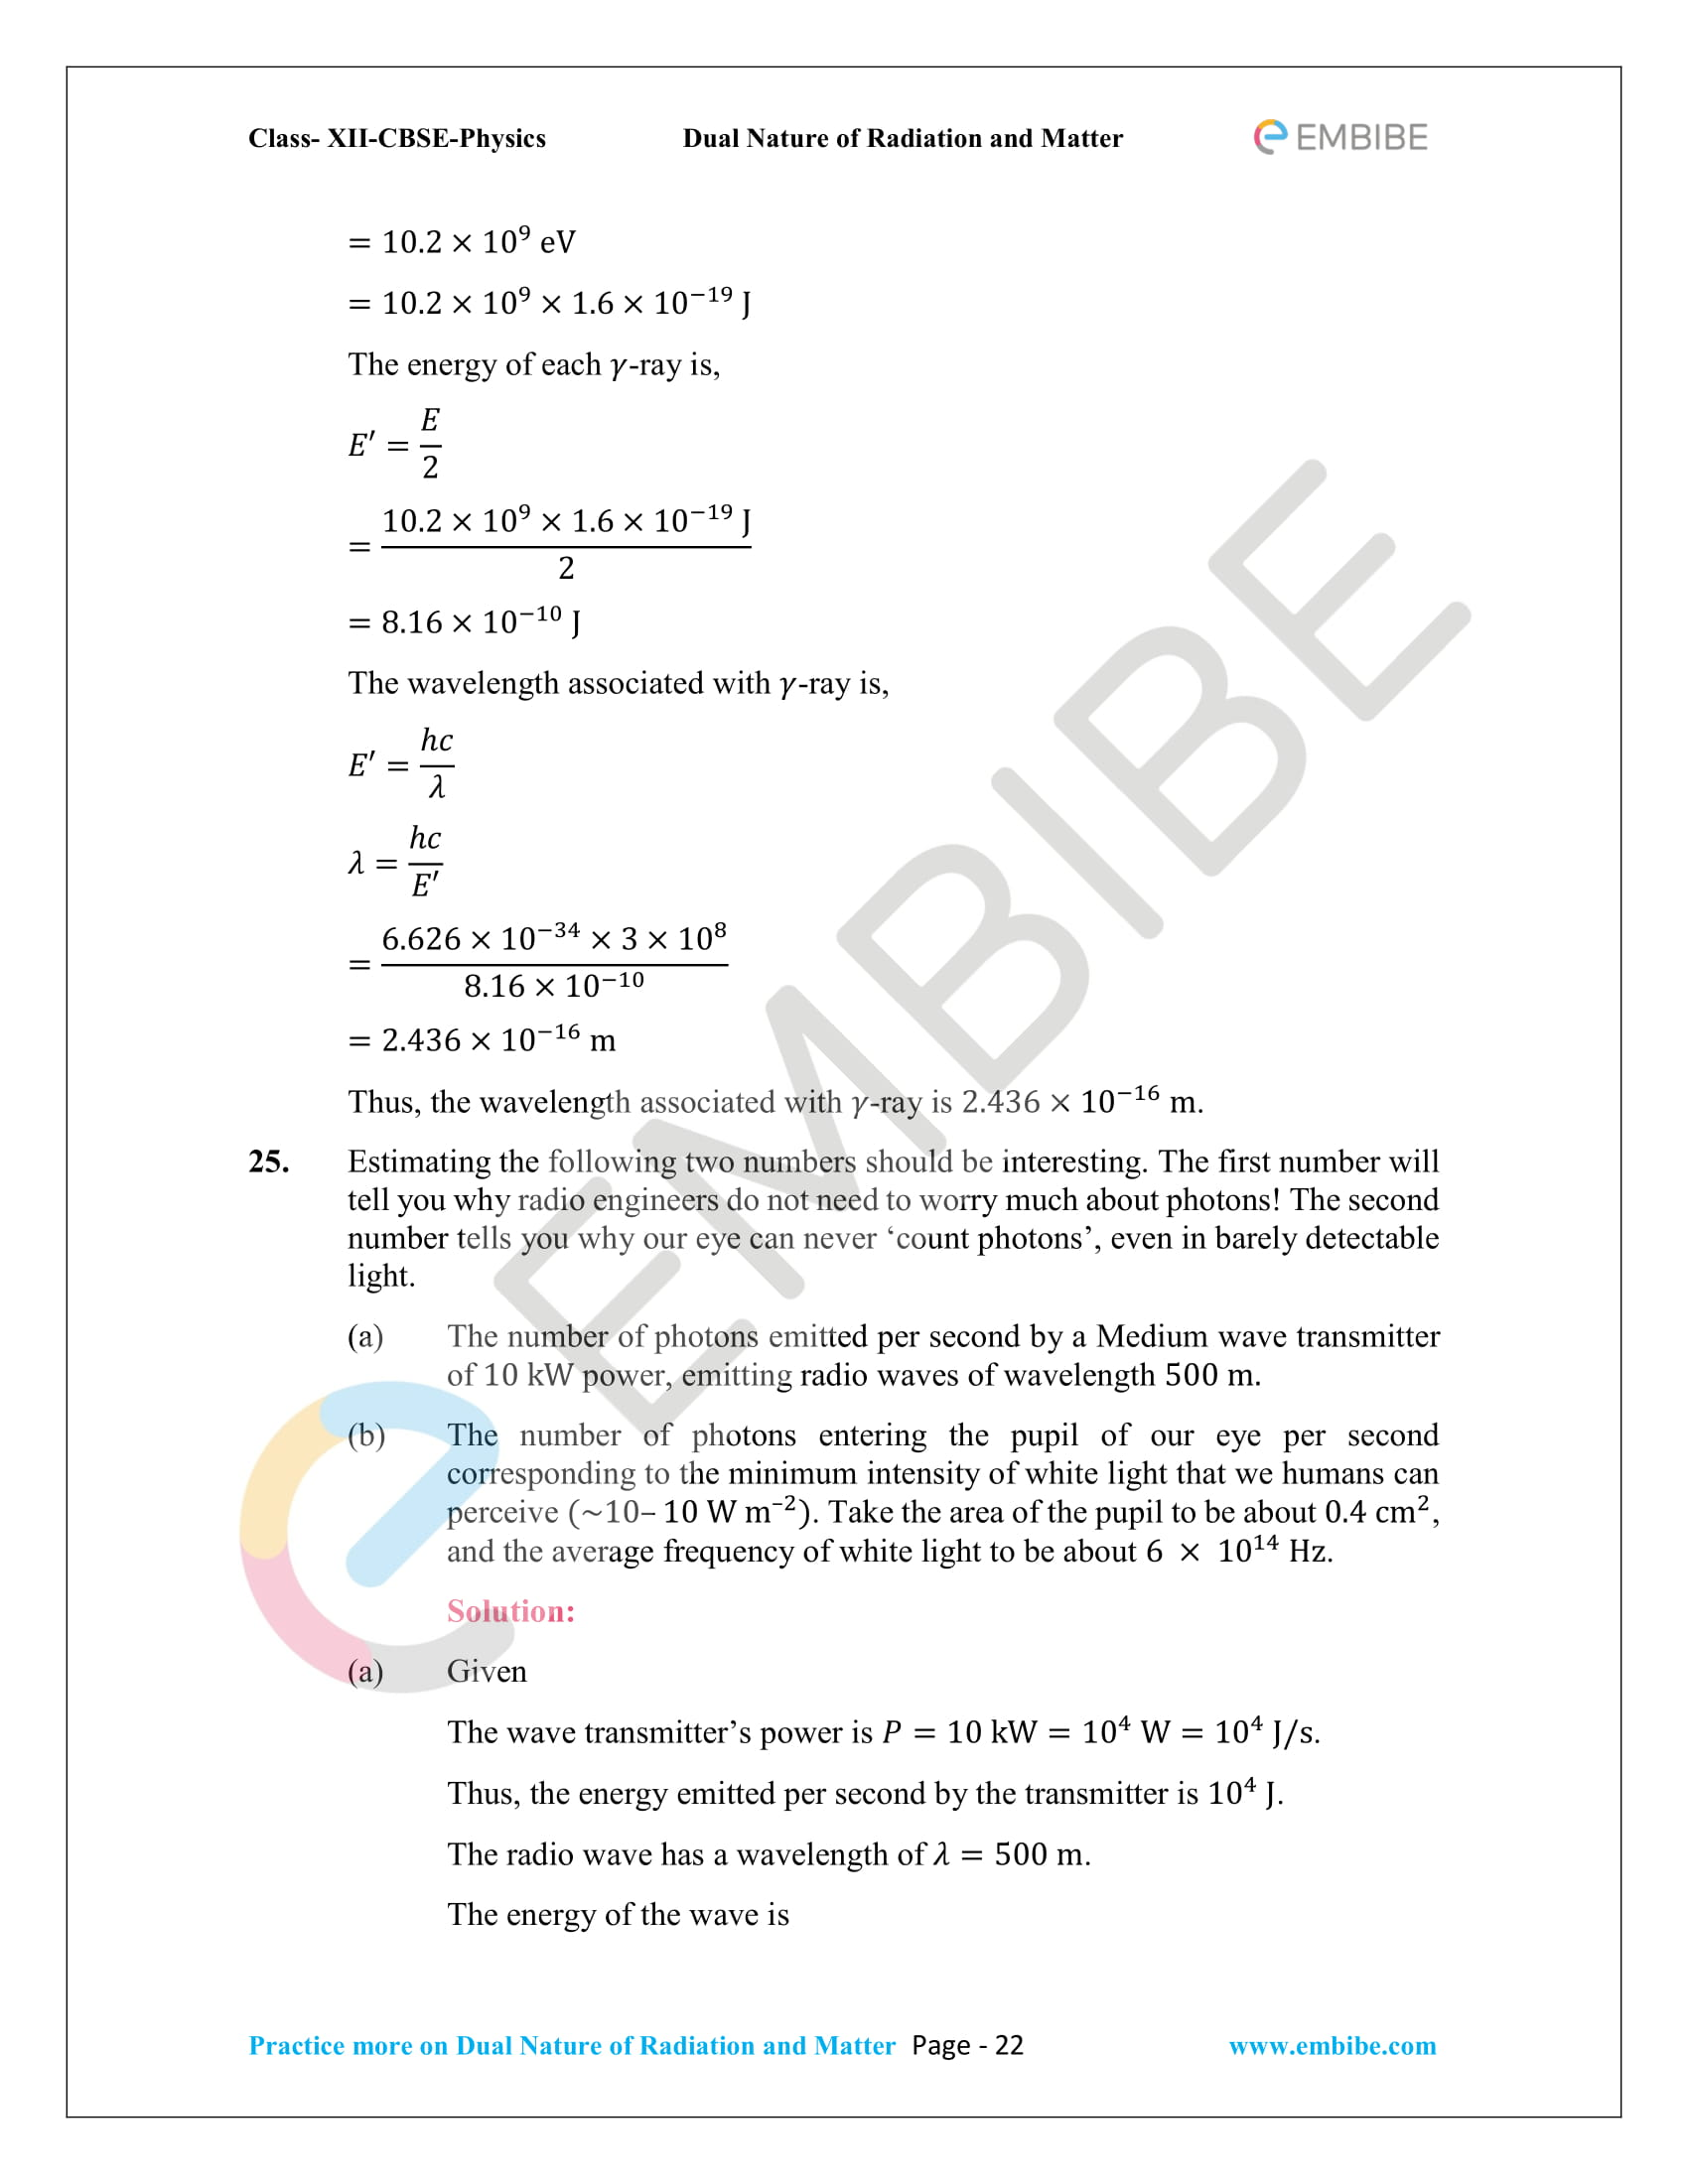 NCERT_Grade 12_Physics_Ch_11_Dual Nature of Radiation and Matter-22